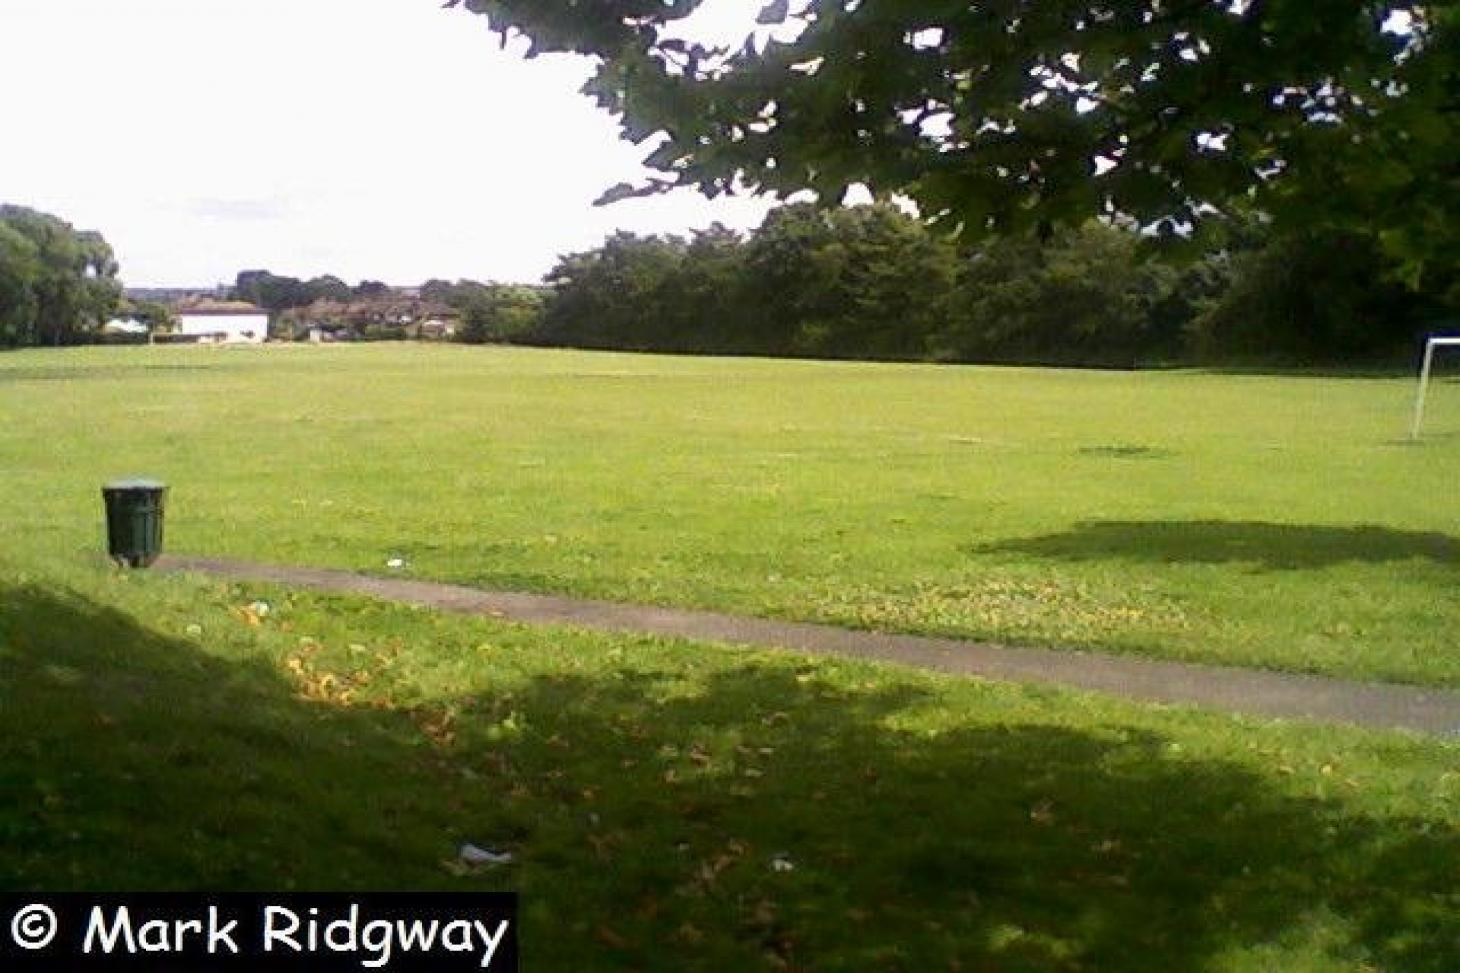 Selsdon Recreation Ground 11 a side | Grass football pitch